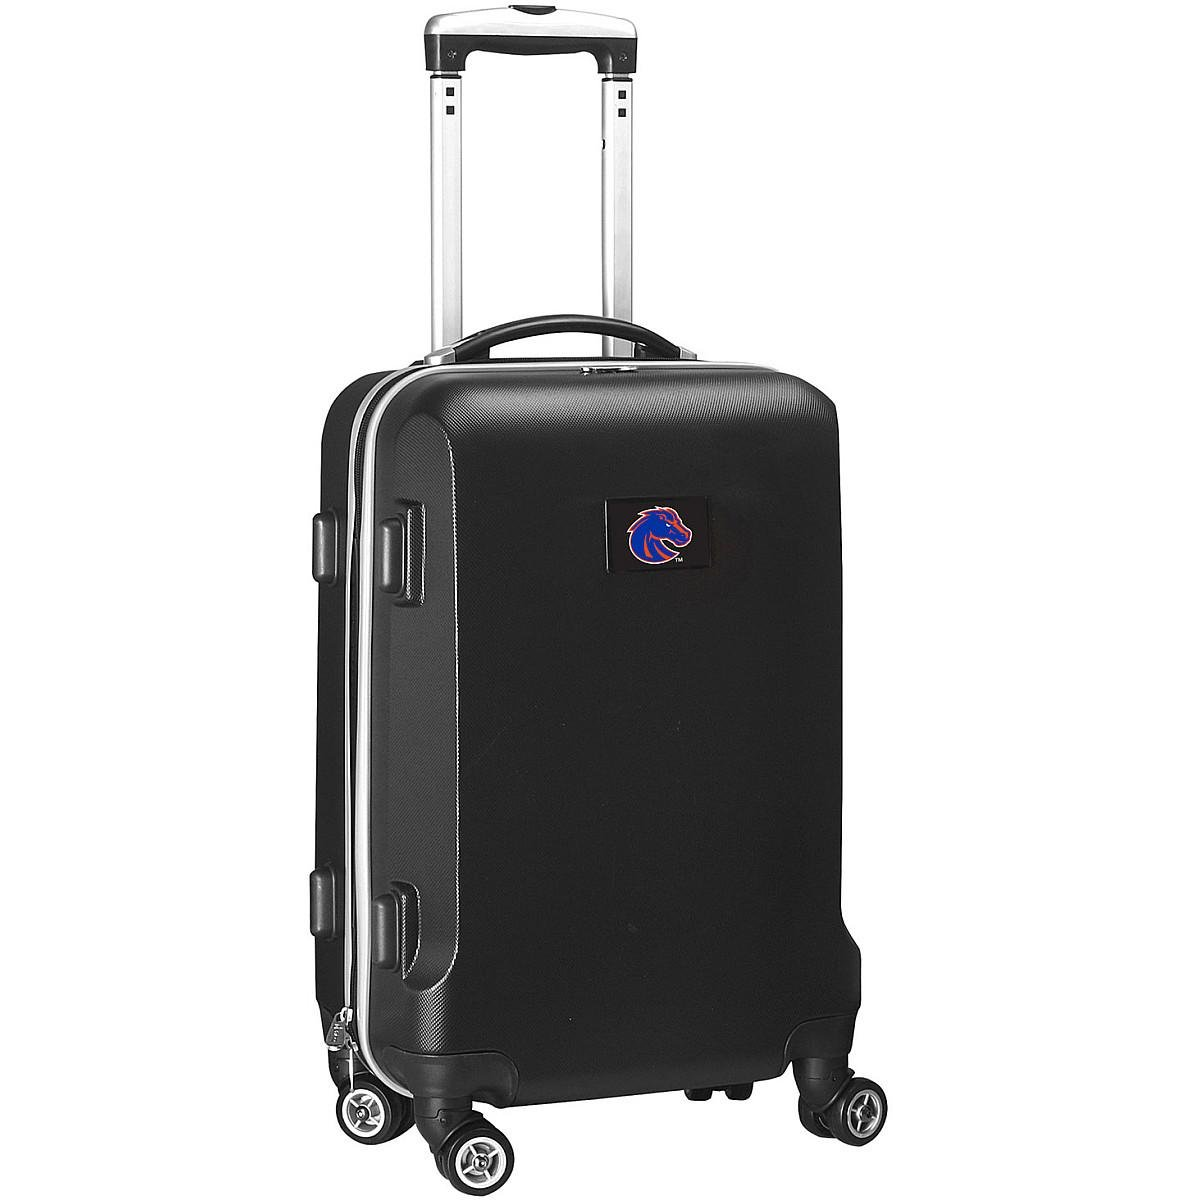 Denco NCAA Boise State Broncos Carry-On Hardcase Luggage Spinner, Black